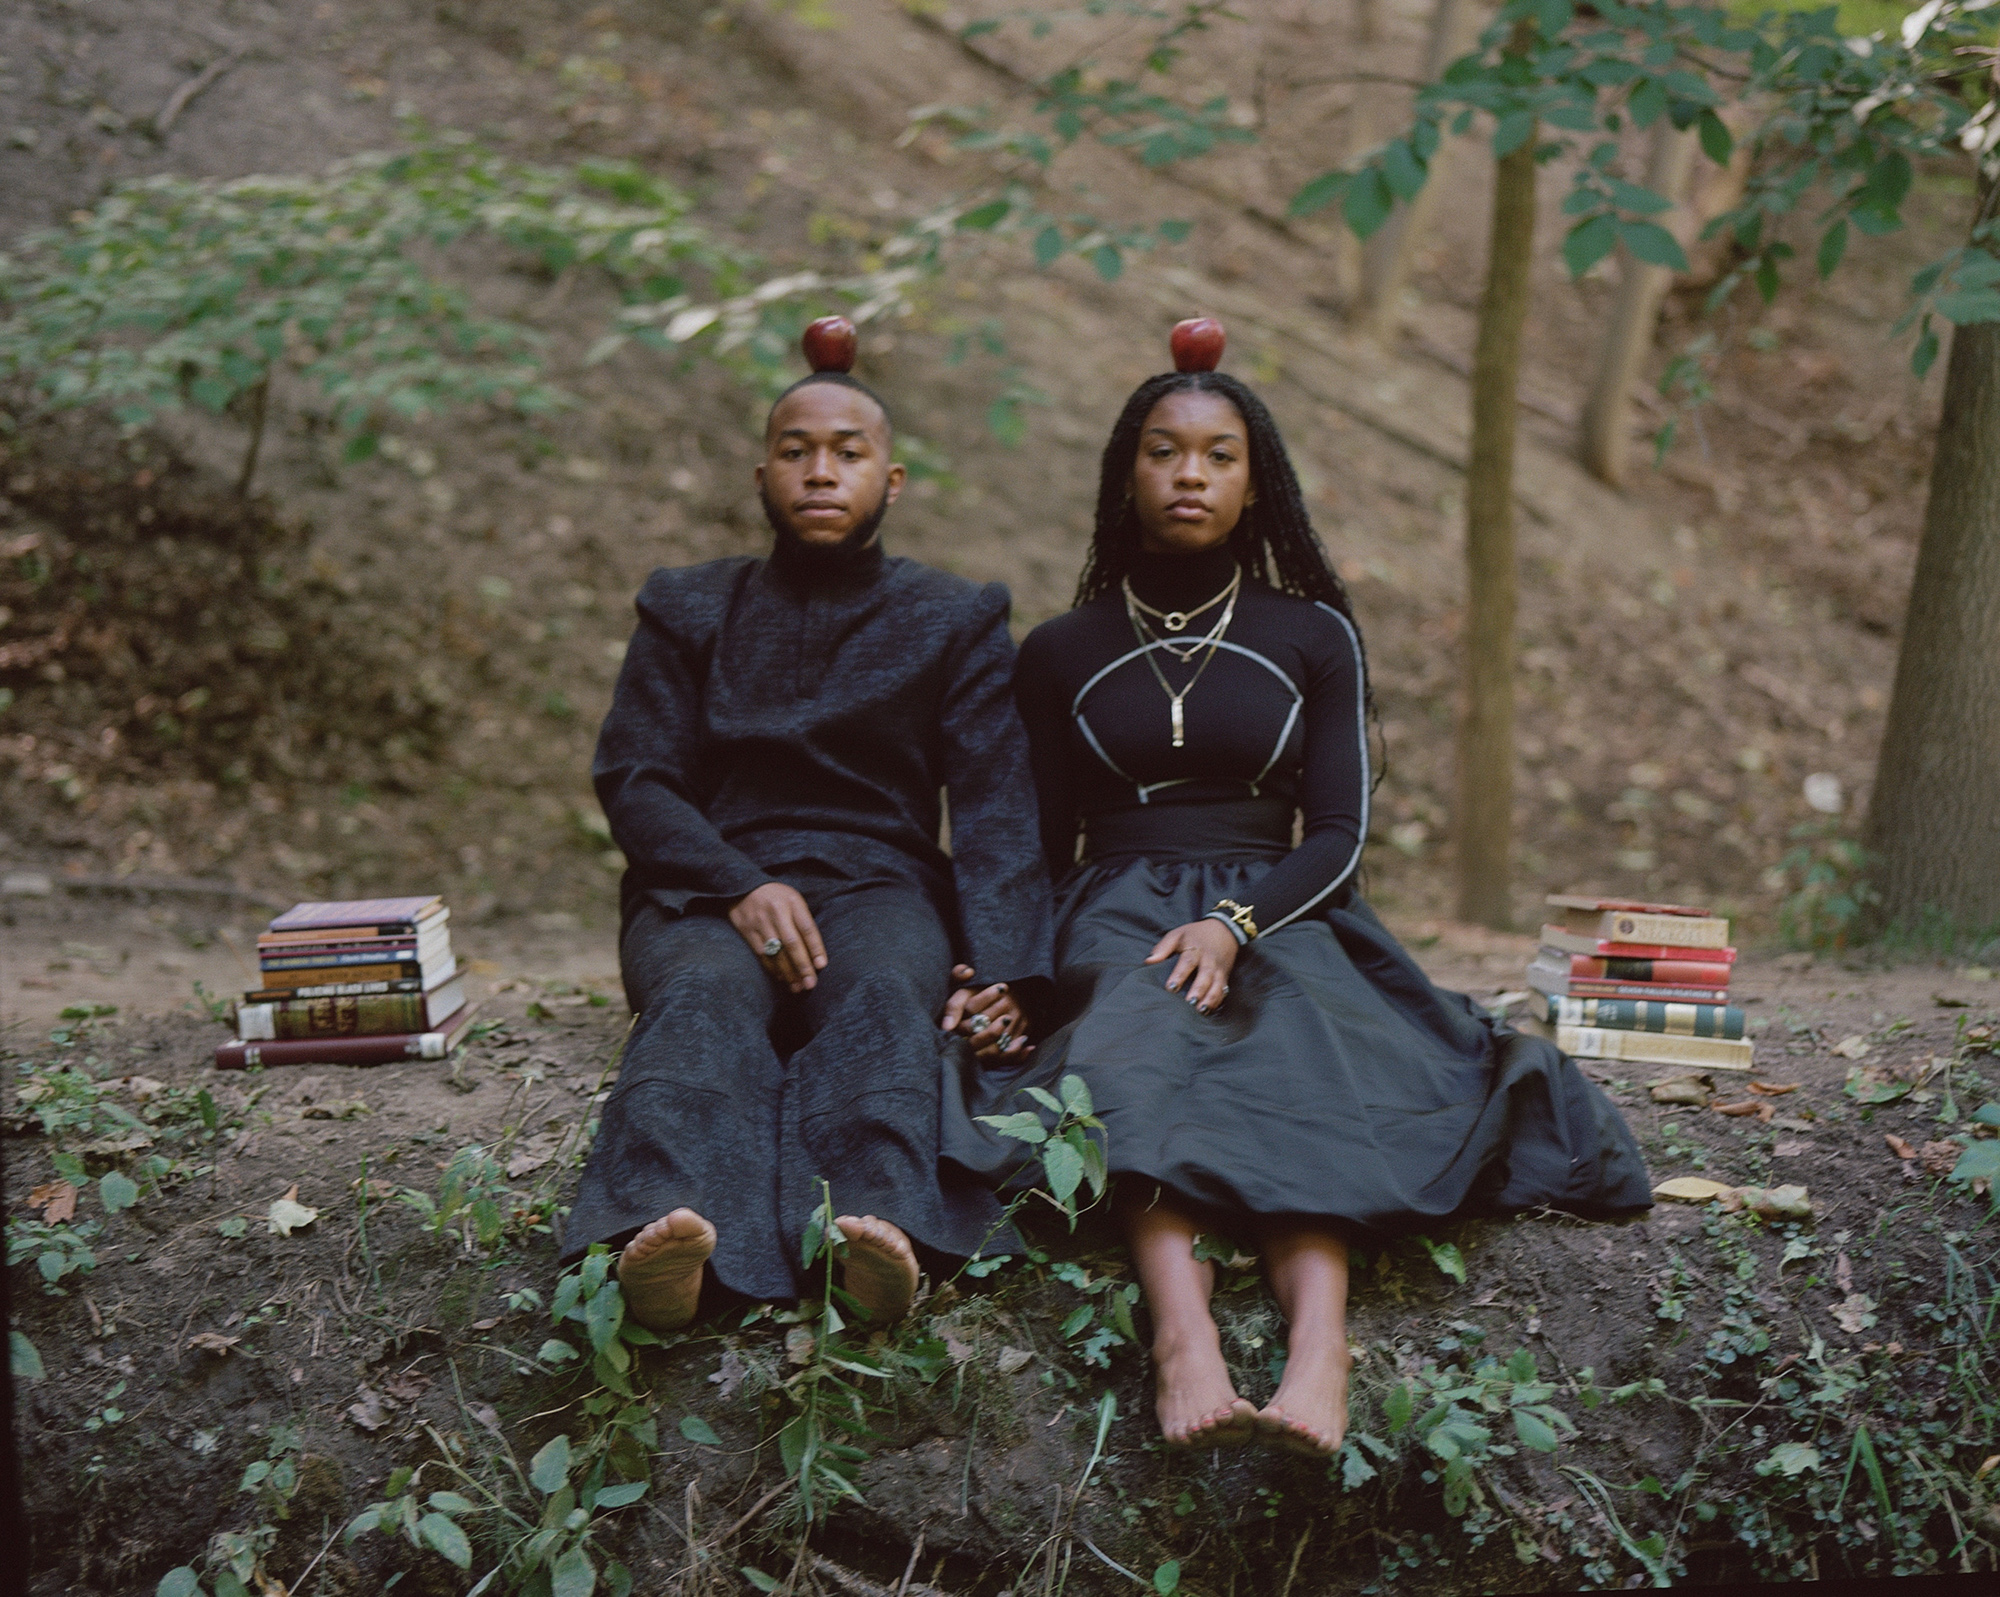 Isabel Okoro, 02, from the series If you knew how we got here, 2020. Courtesy of the artist.